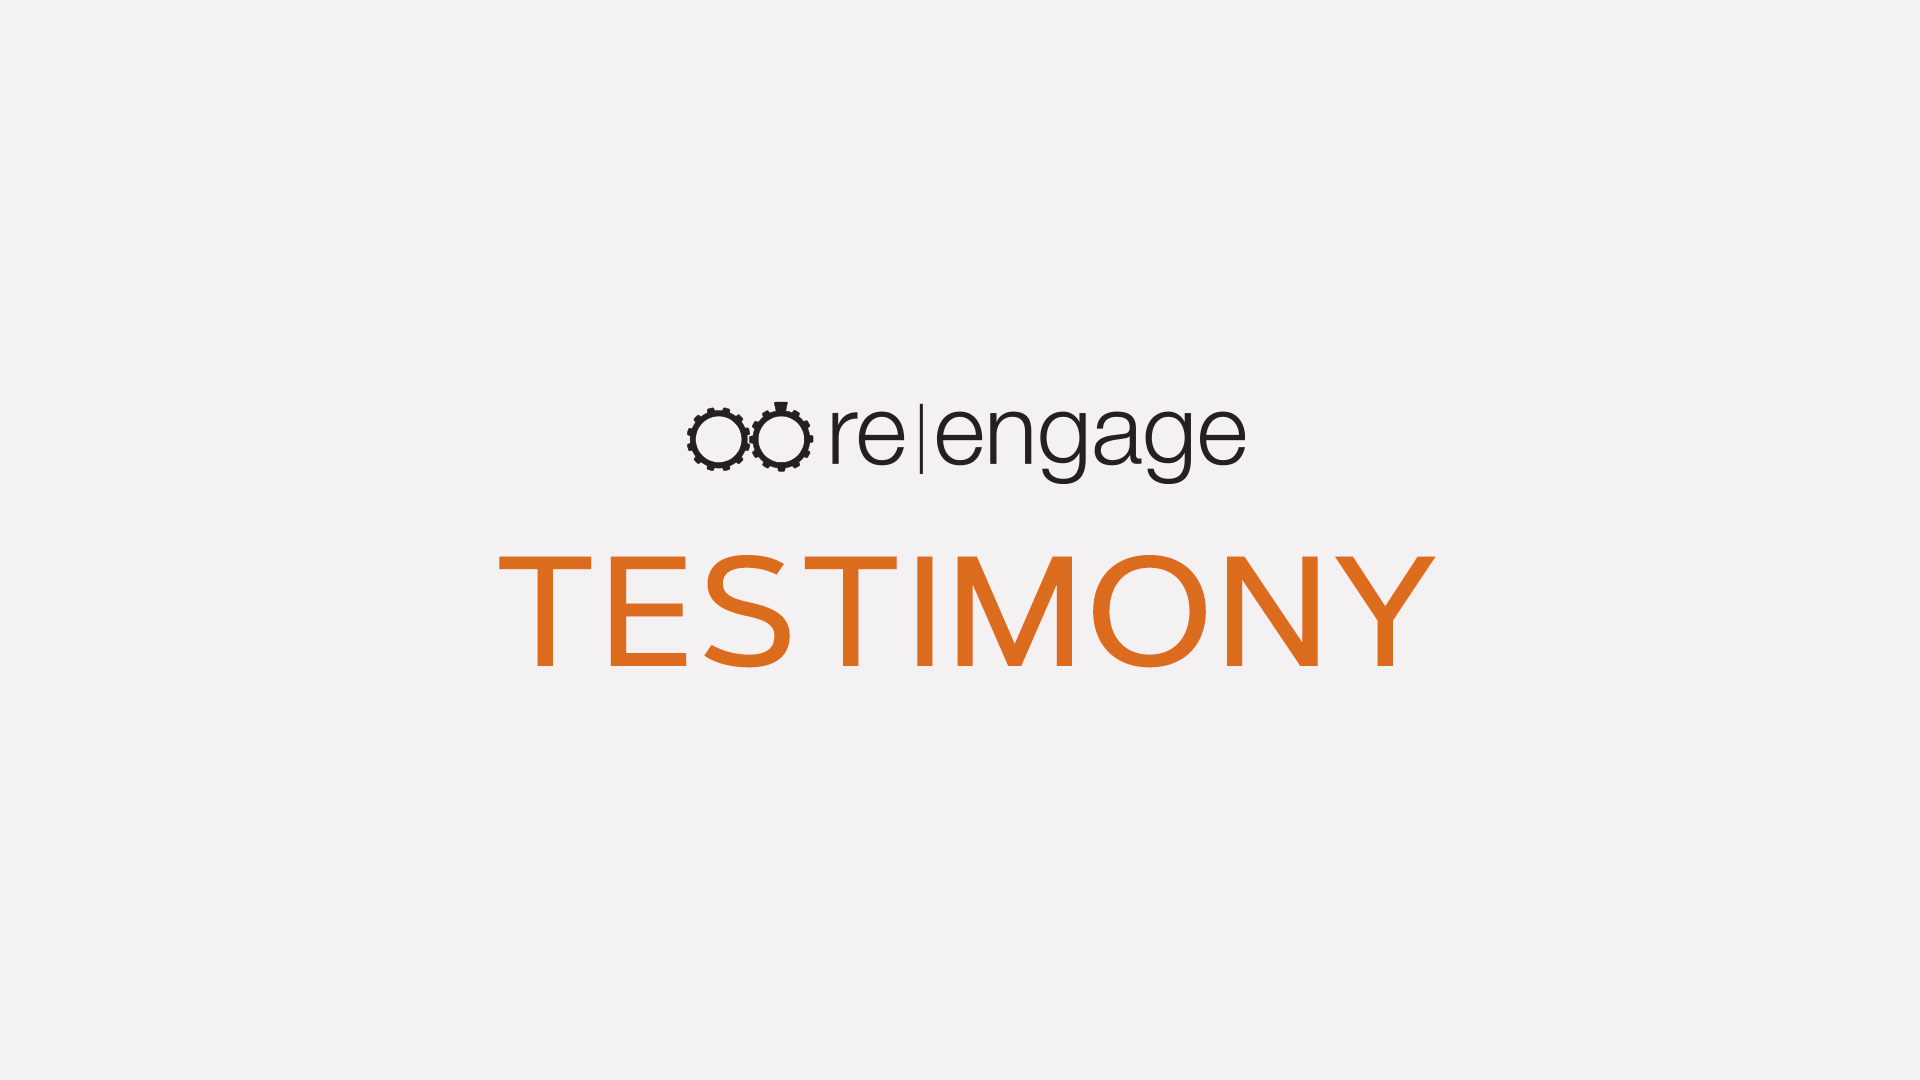 Jeff and Martha Sharrock - re|engage Testimony